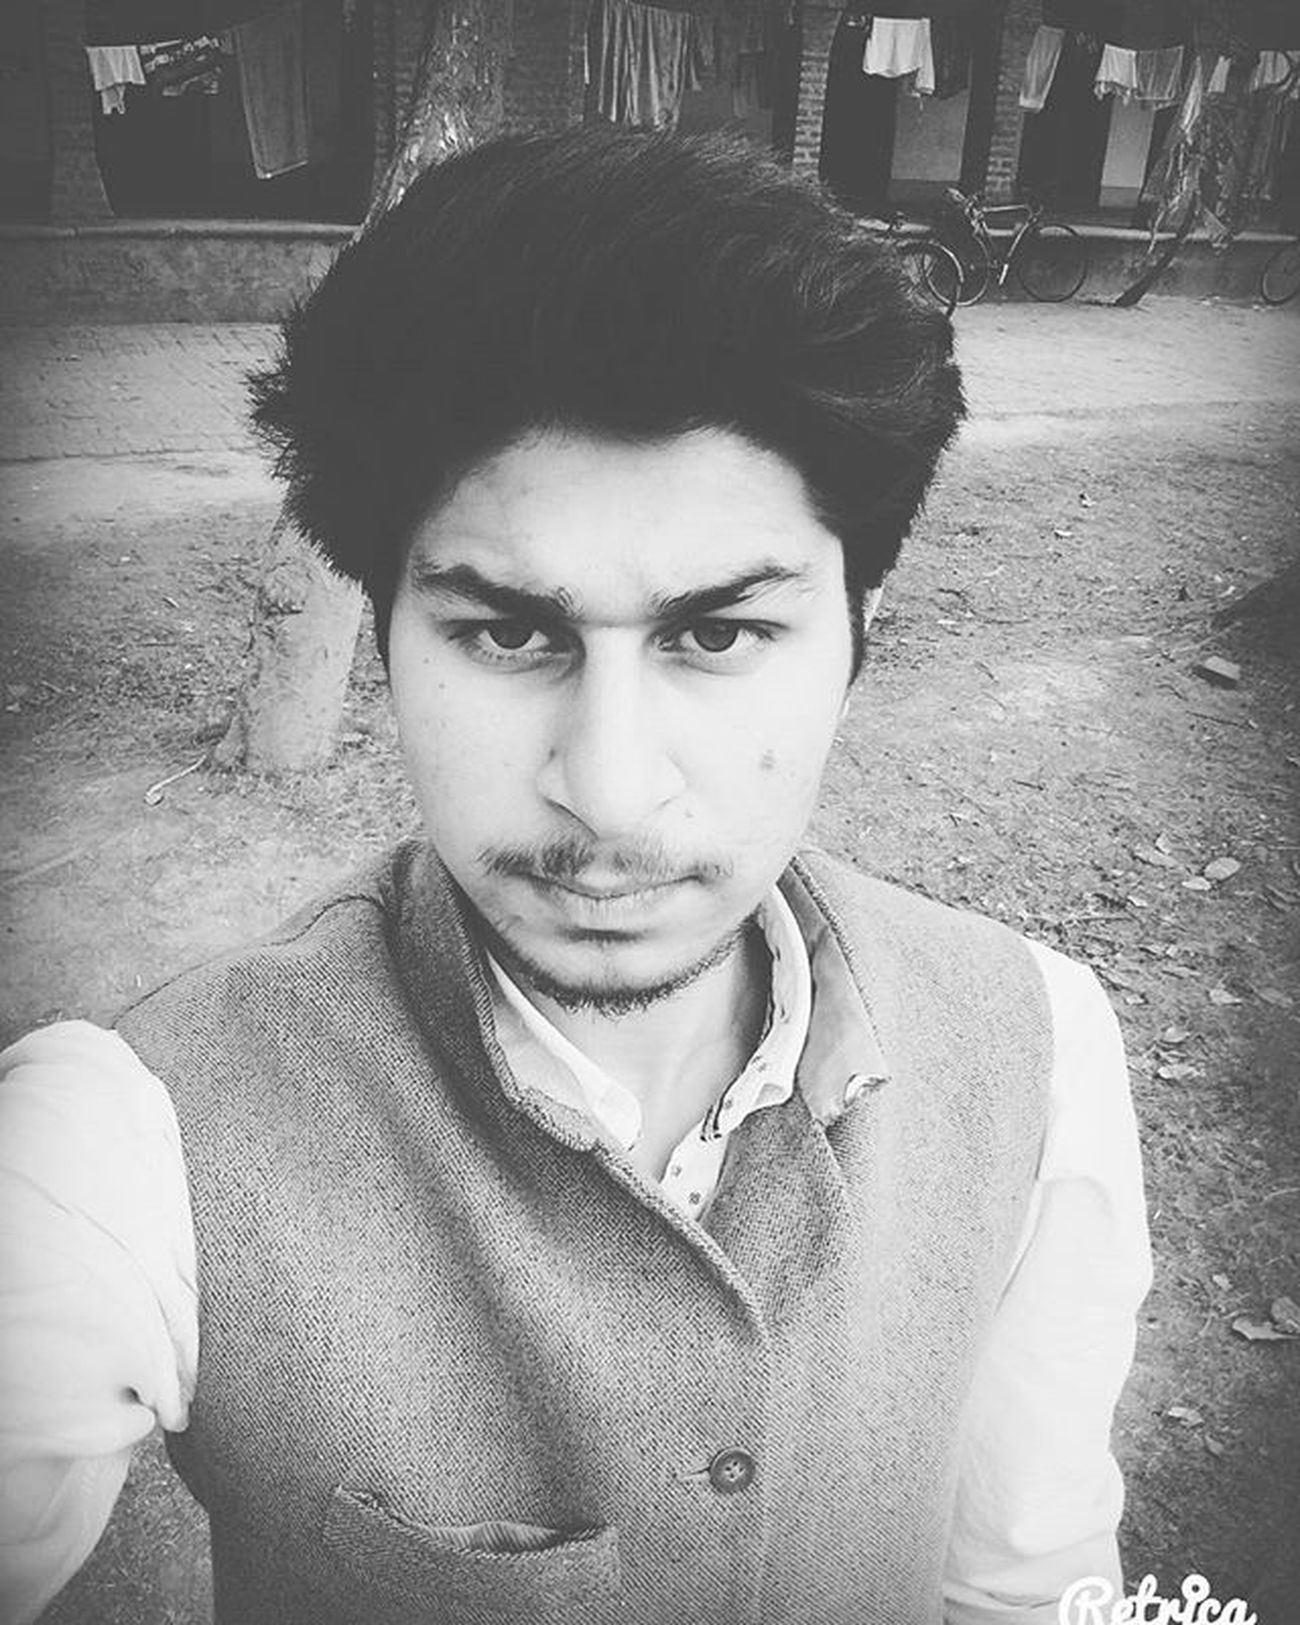 Friday Jummah Edited Blackandwhite Retrica Happy Life